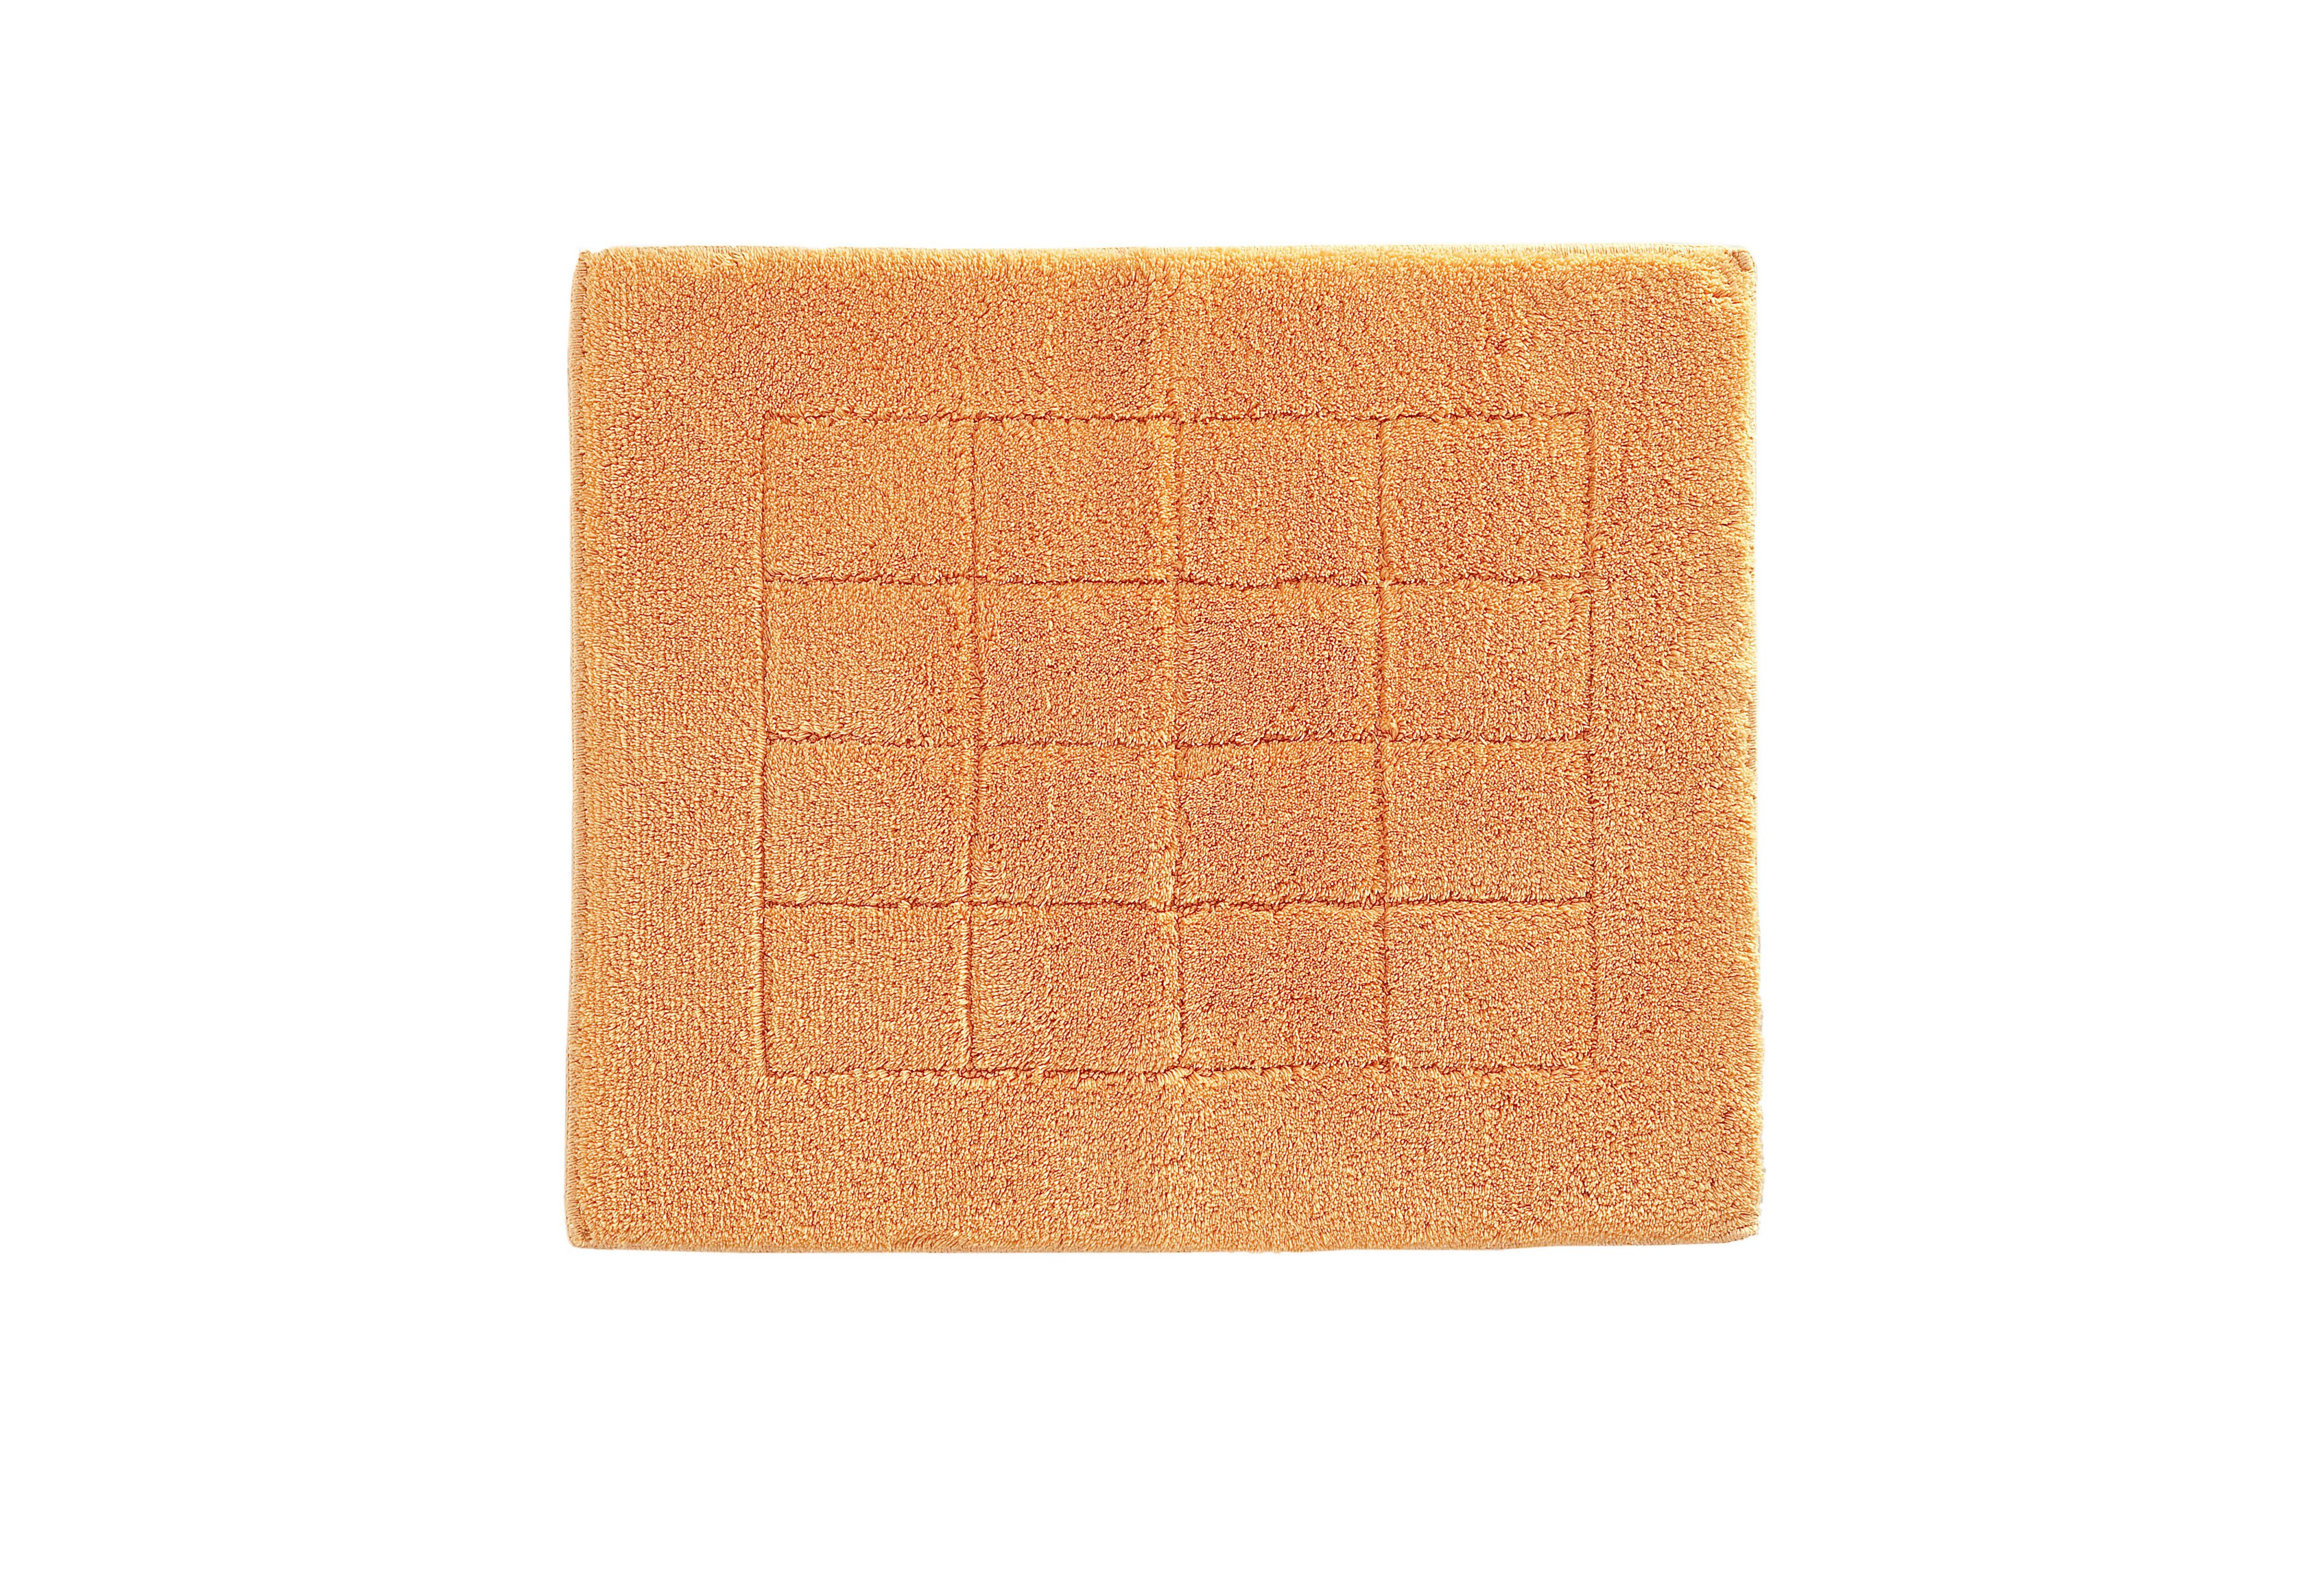 Exclusive bath mat range in apricot